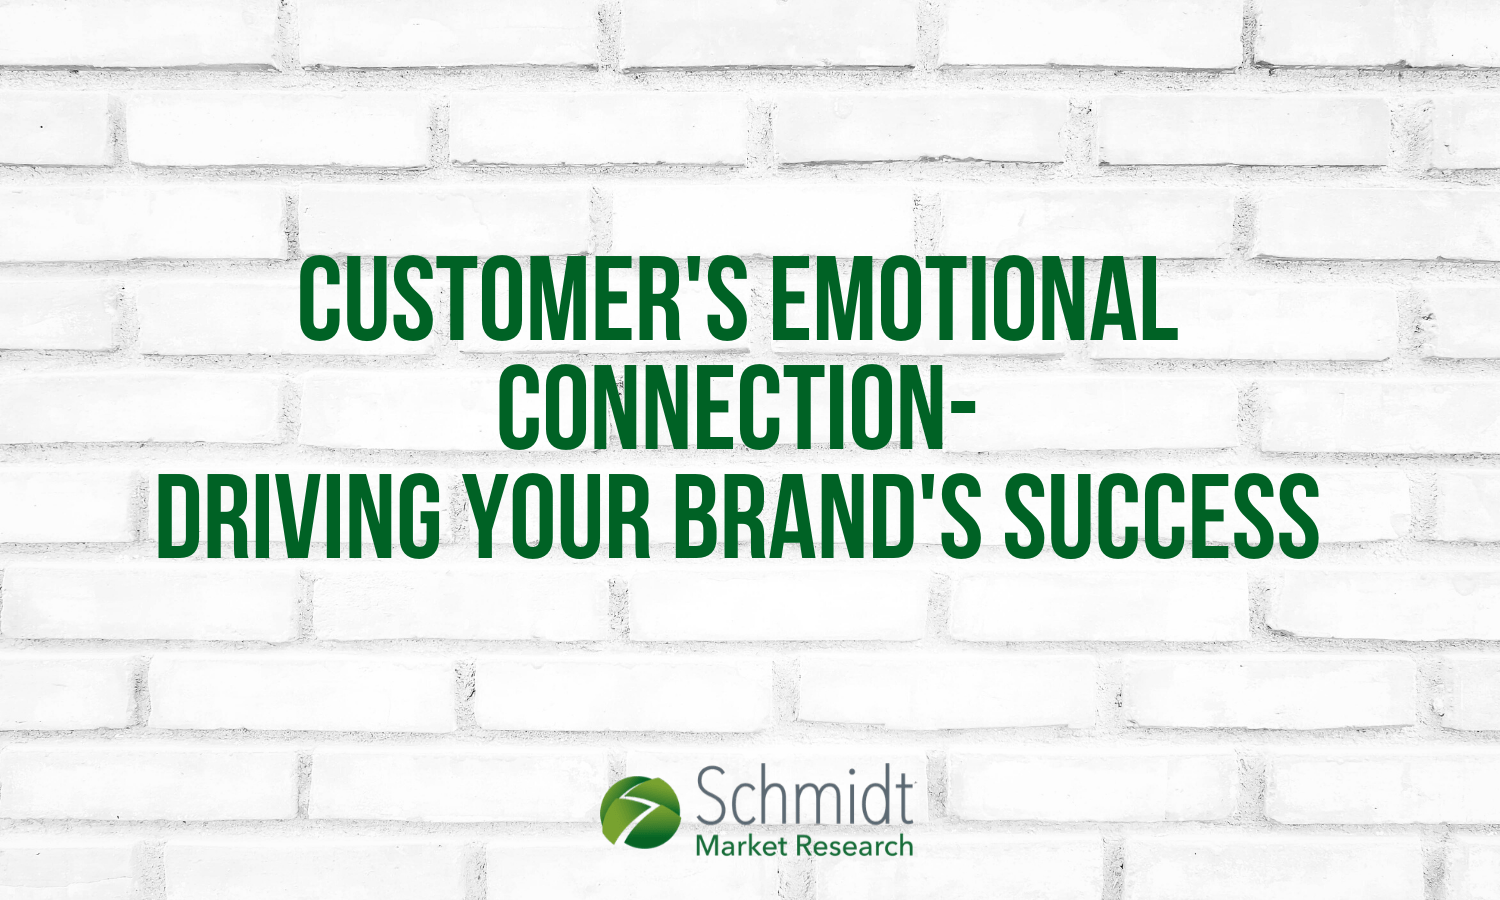 Schmidt Market Research: Customer's emotional connection- driving your brand's success with EC5